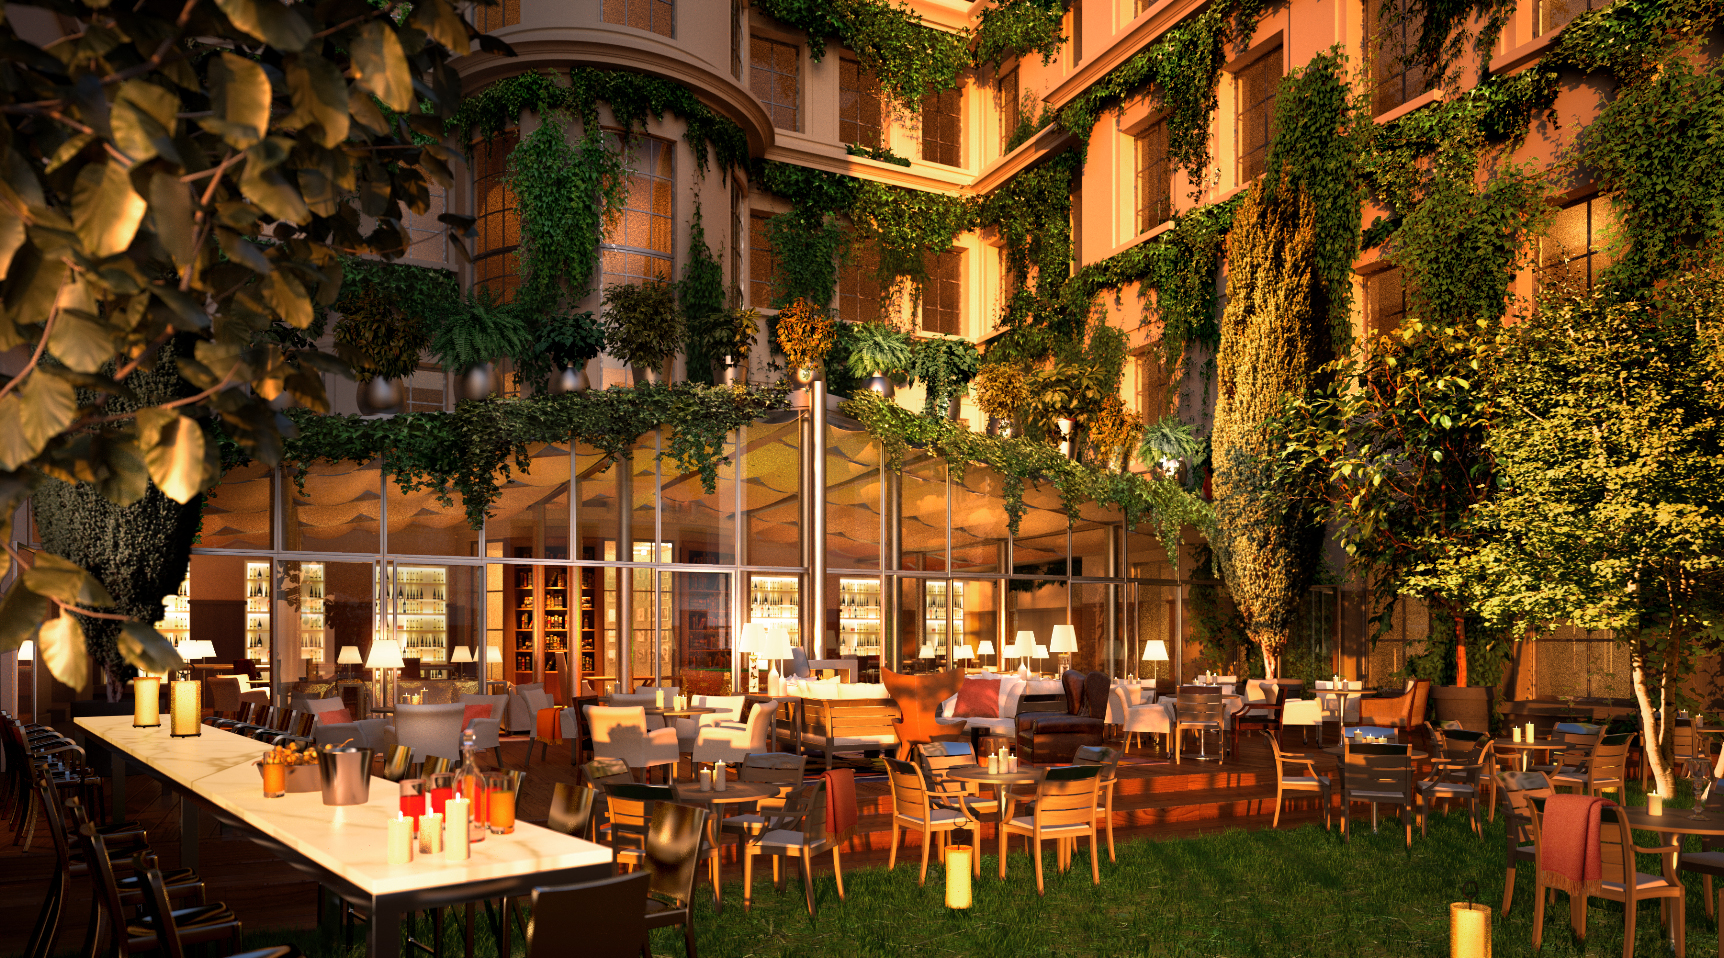 Rosewood S 227 O Paulo In Brazil To Open In 2018